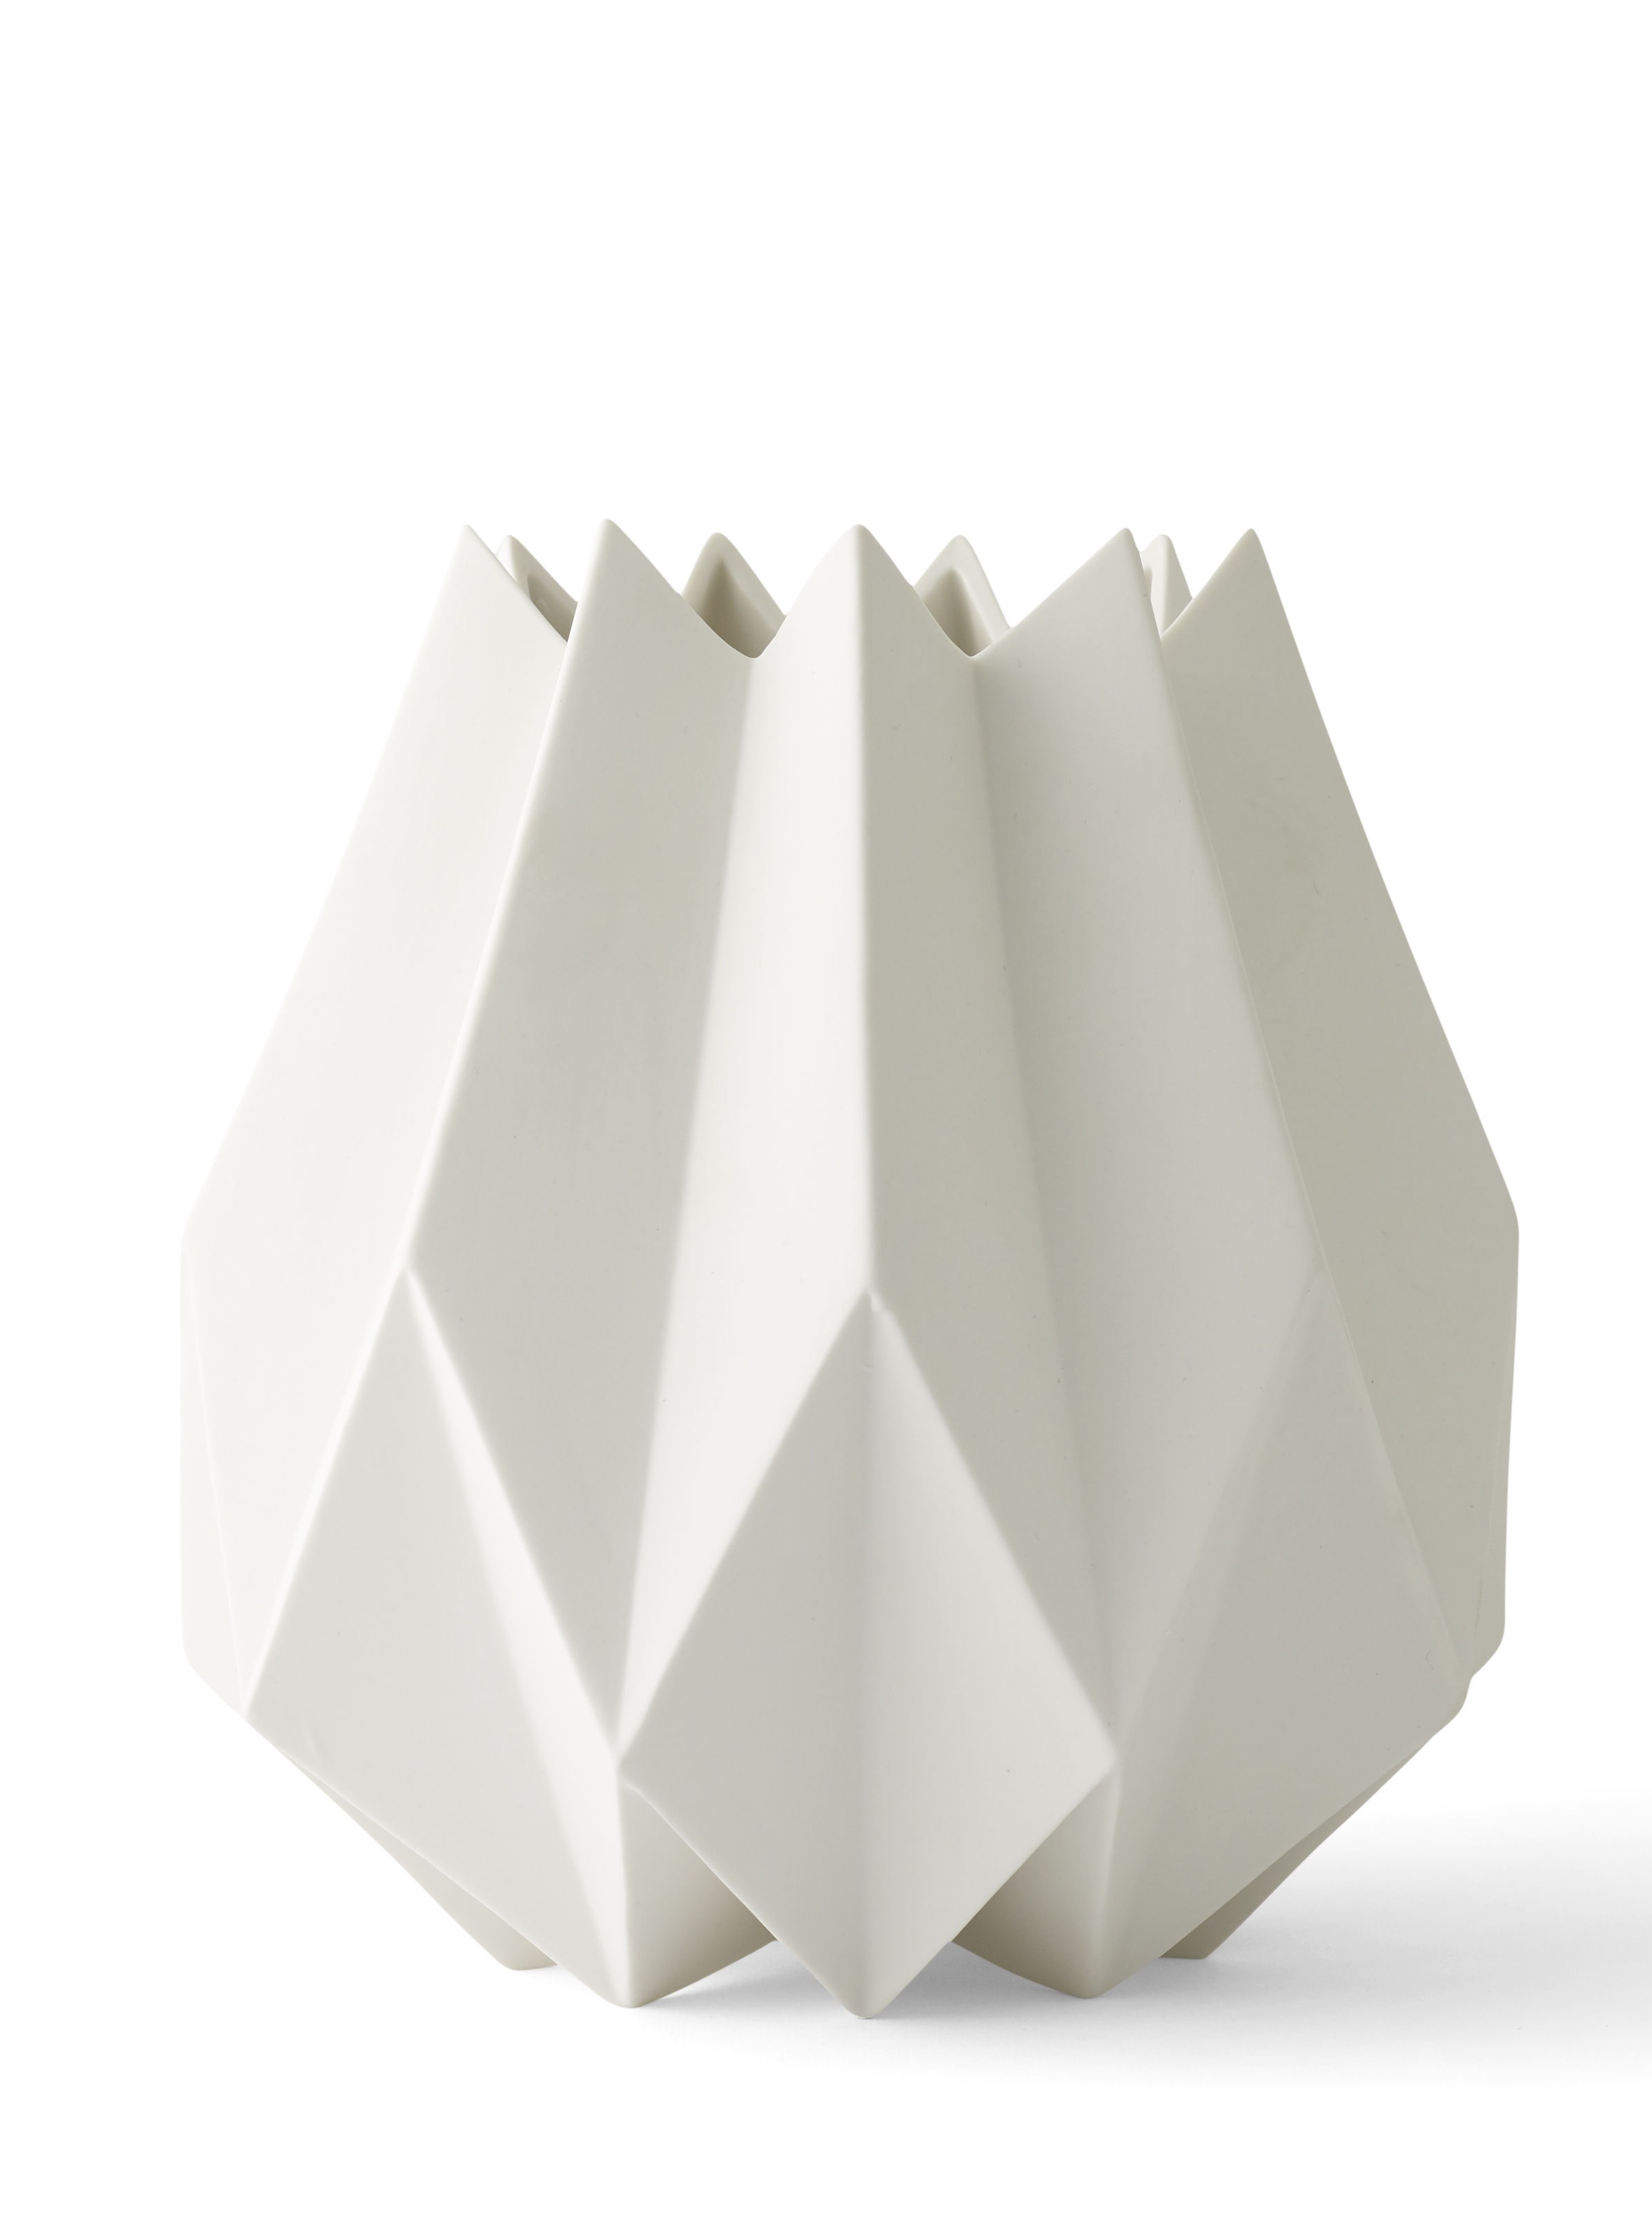 How To Make A Flower Vase Out Of Paper   Diy Origami Vase - YouTube   3224x2394